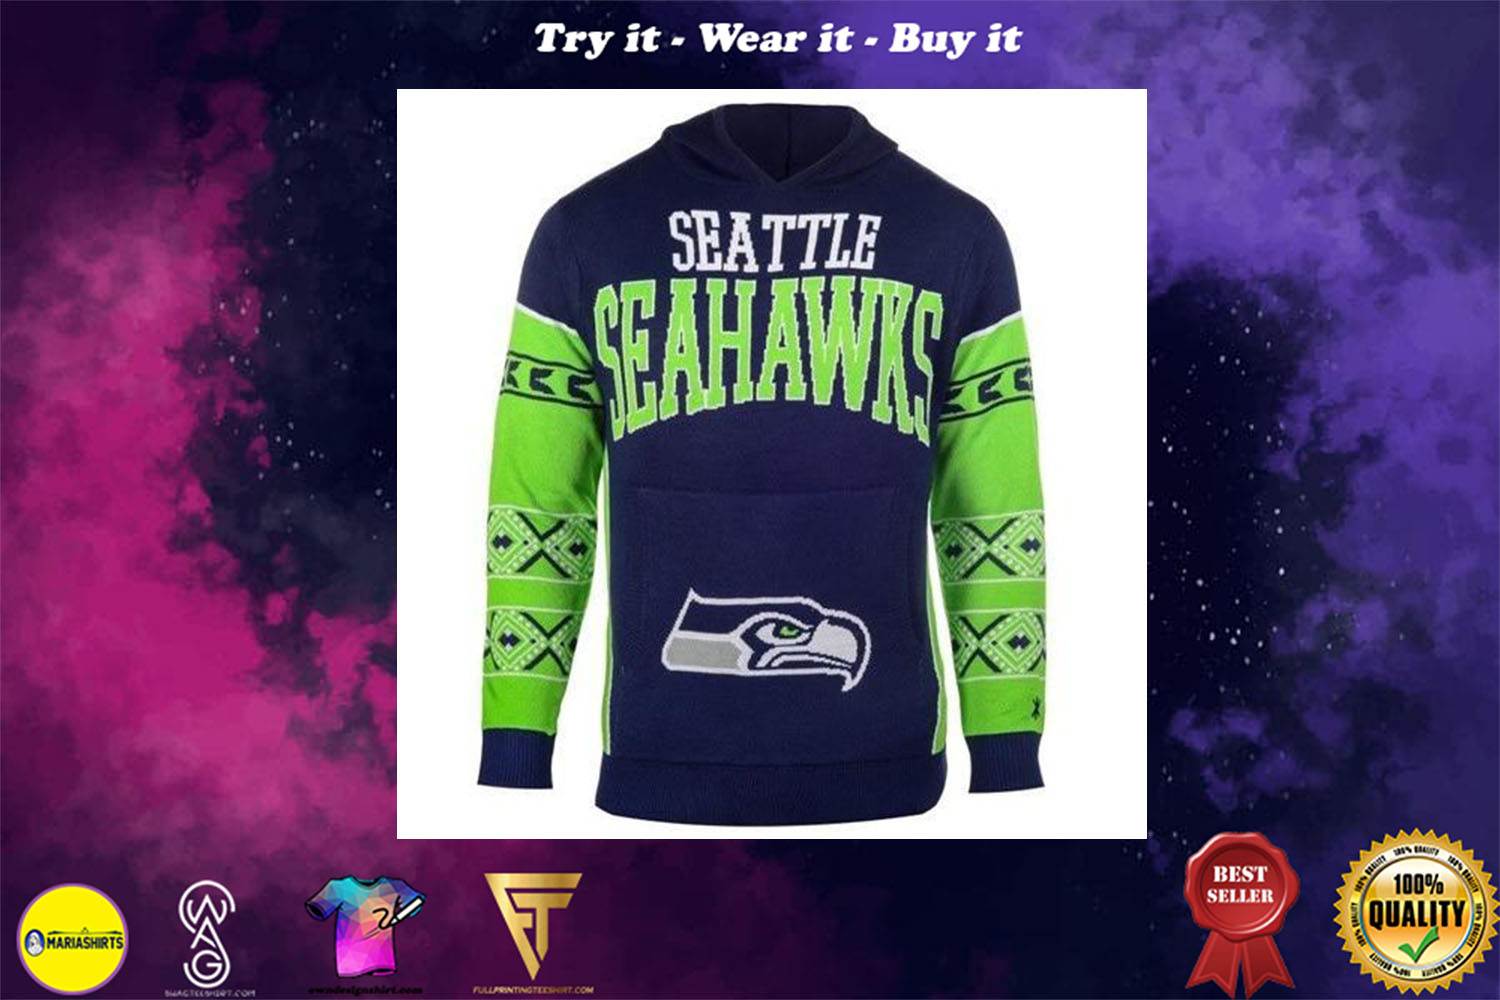 [special edition] the seattle seahawks full over print shirt - maria